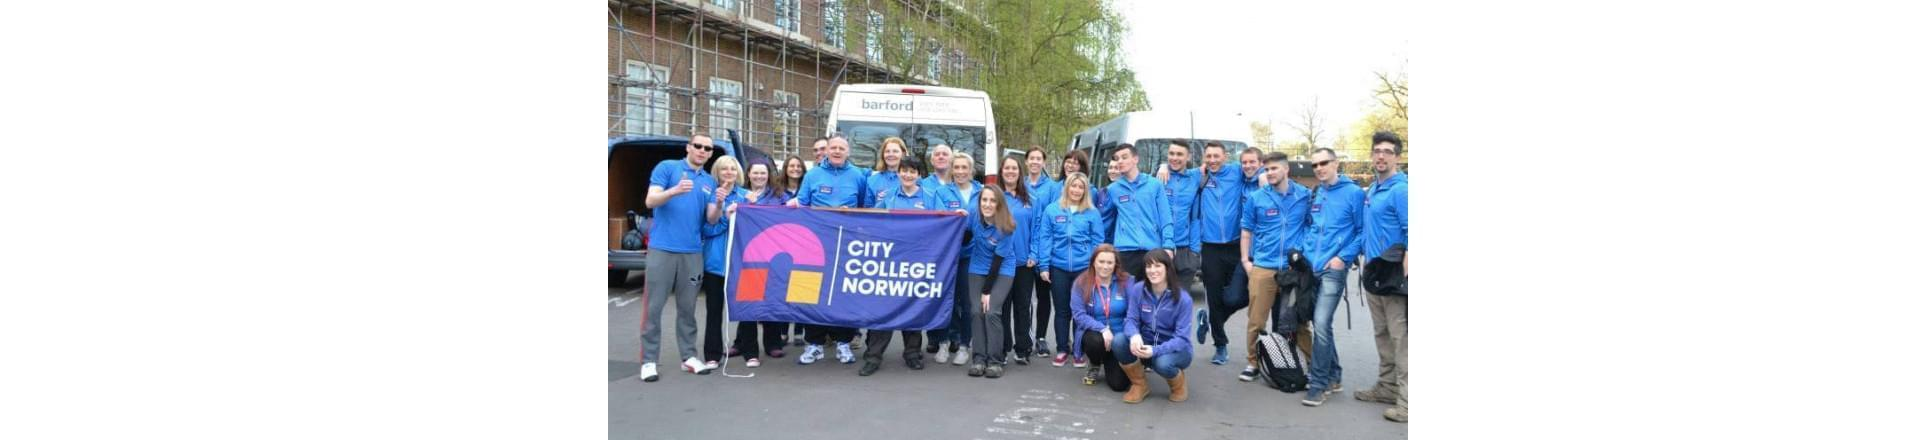 City College Norwich taking part in  Charity walk